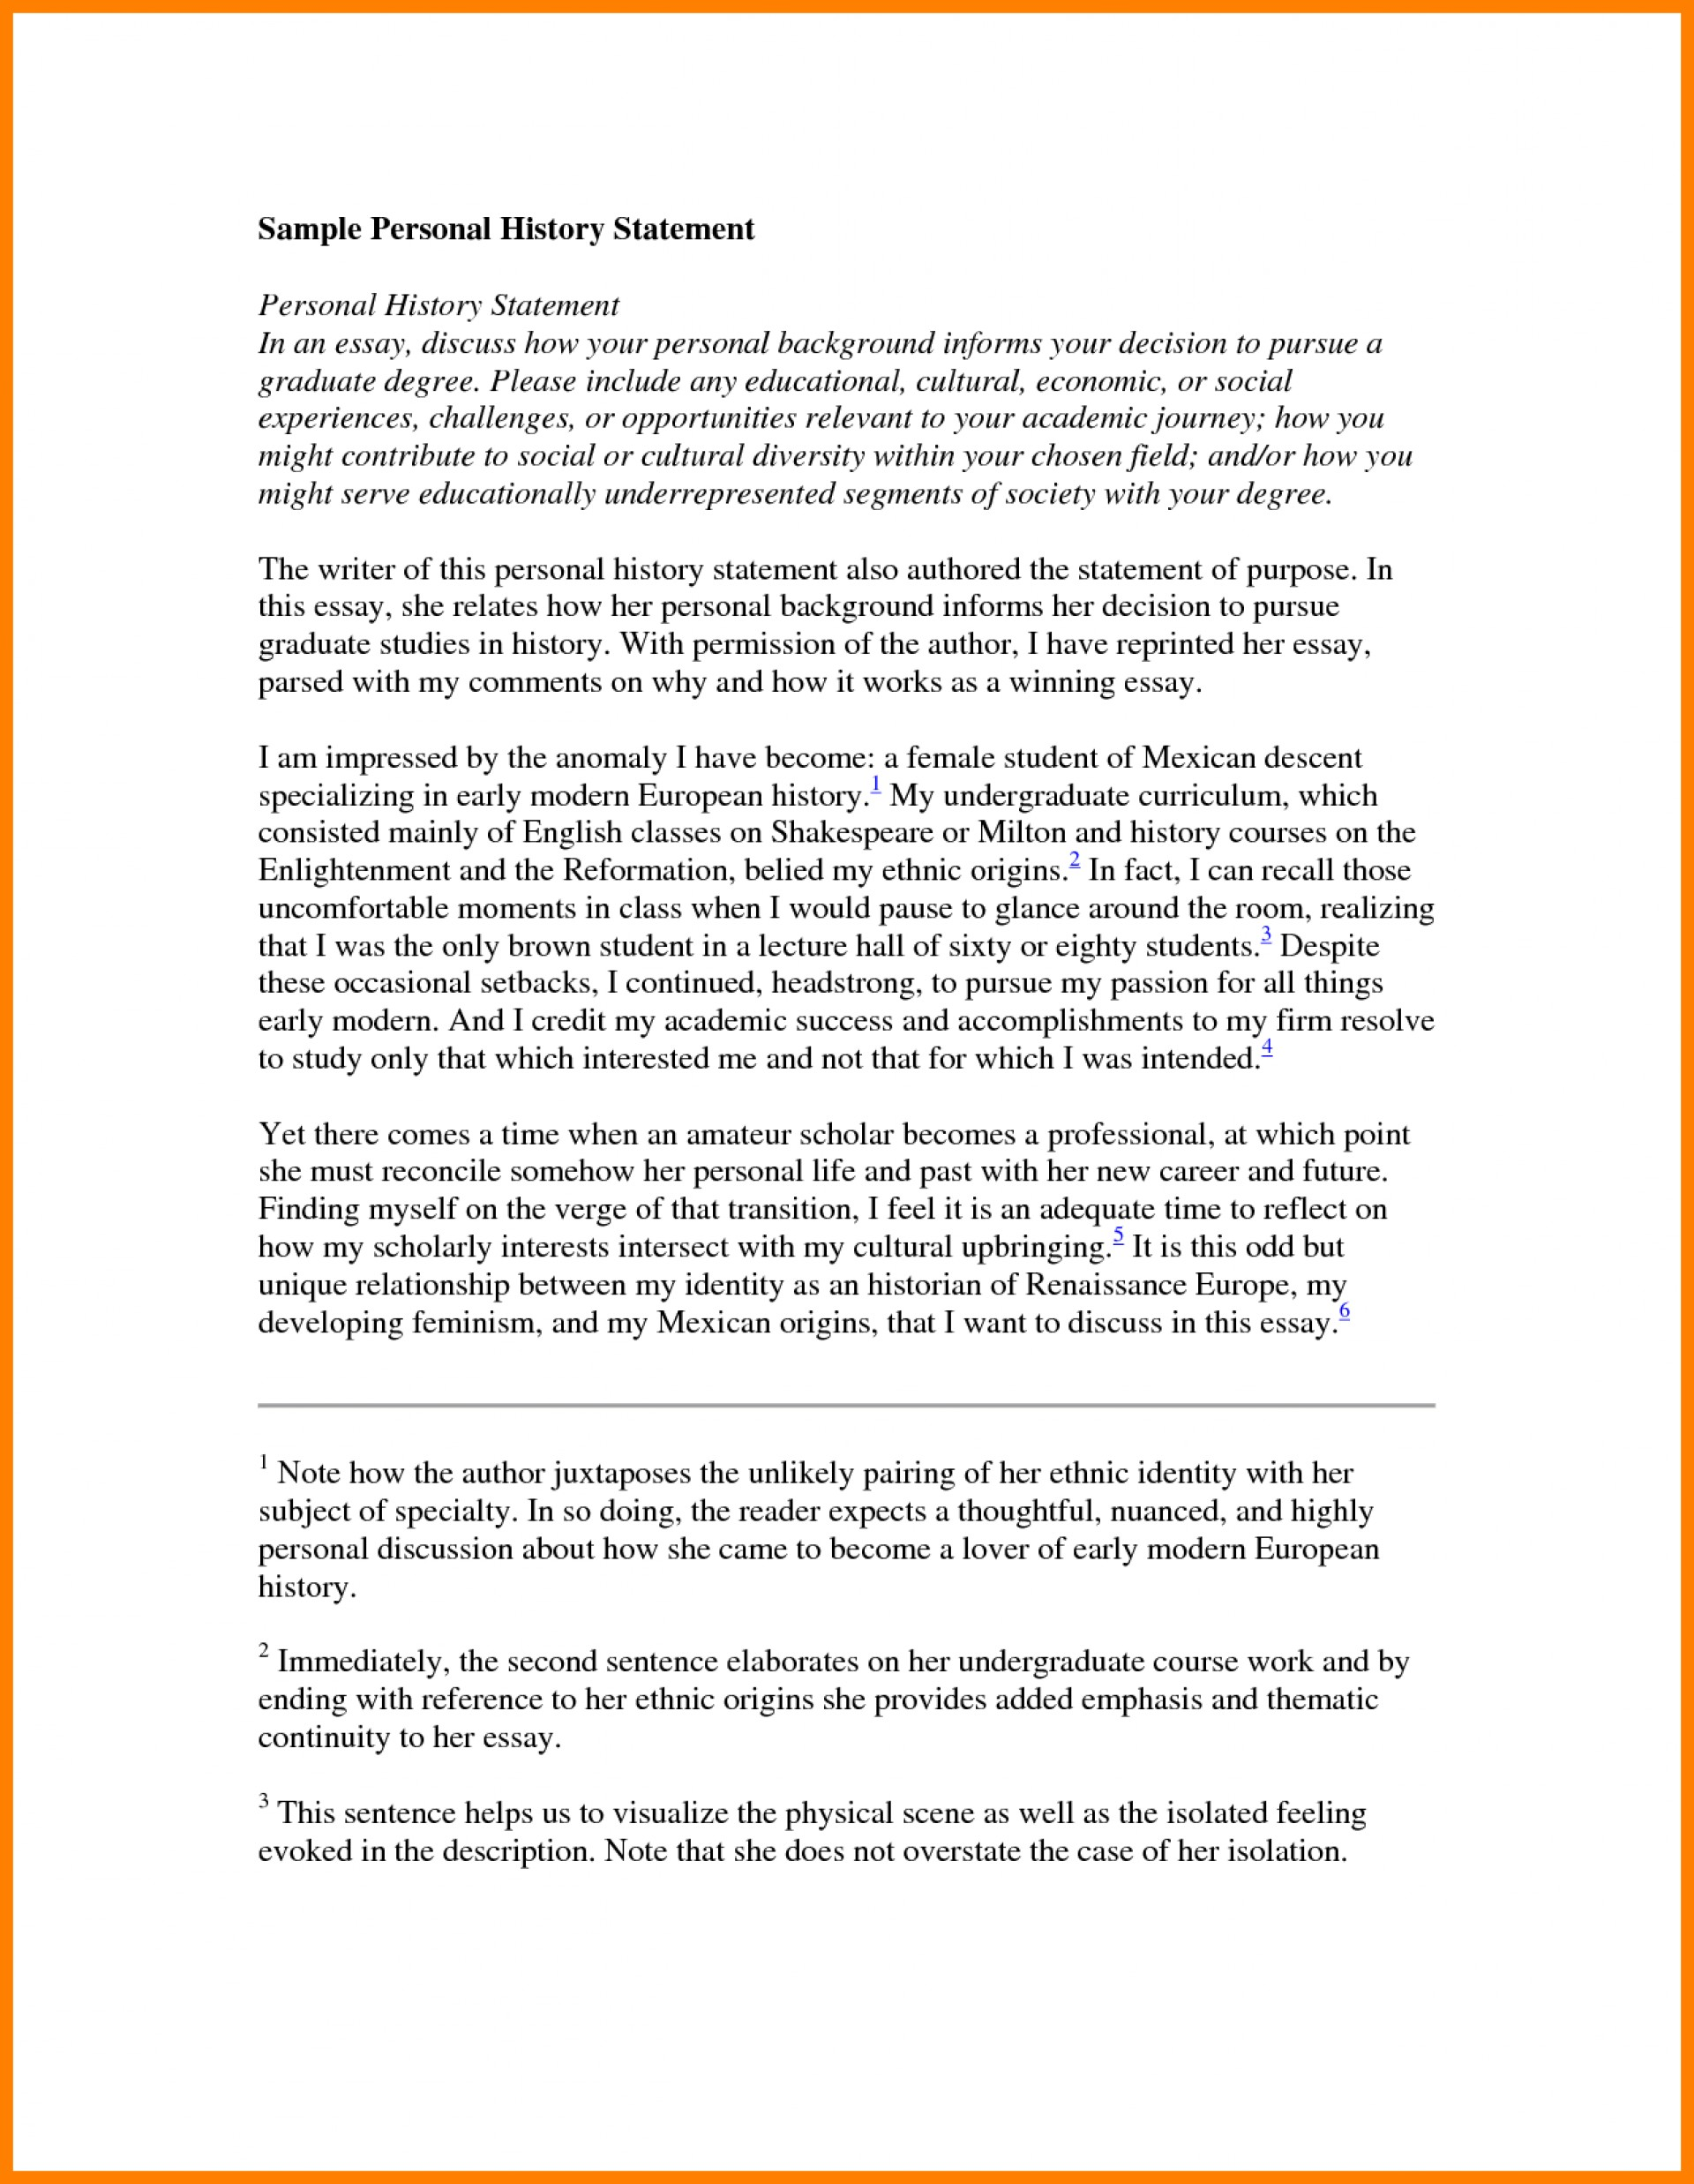 014 Essay Example Social Work Personal Statements Wollid Why I Want To Outstanding Be A Worker Study Do Become Became 1920